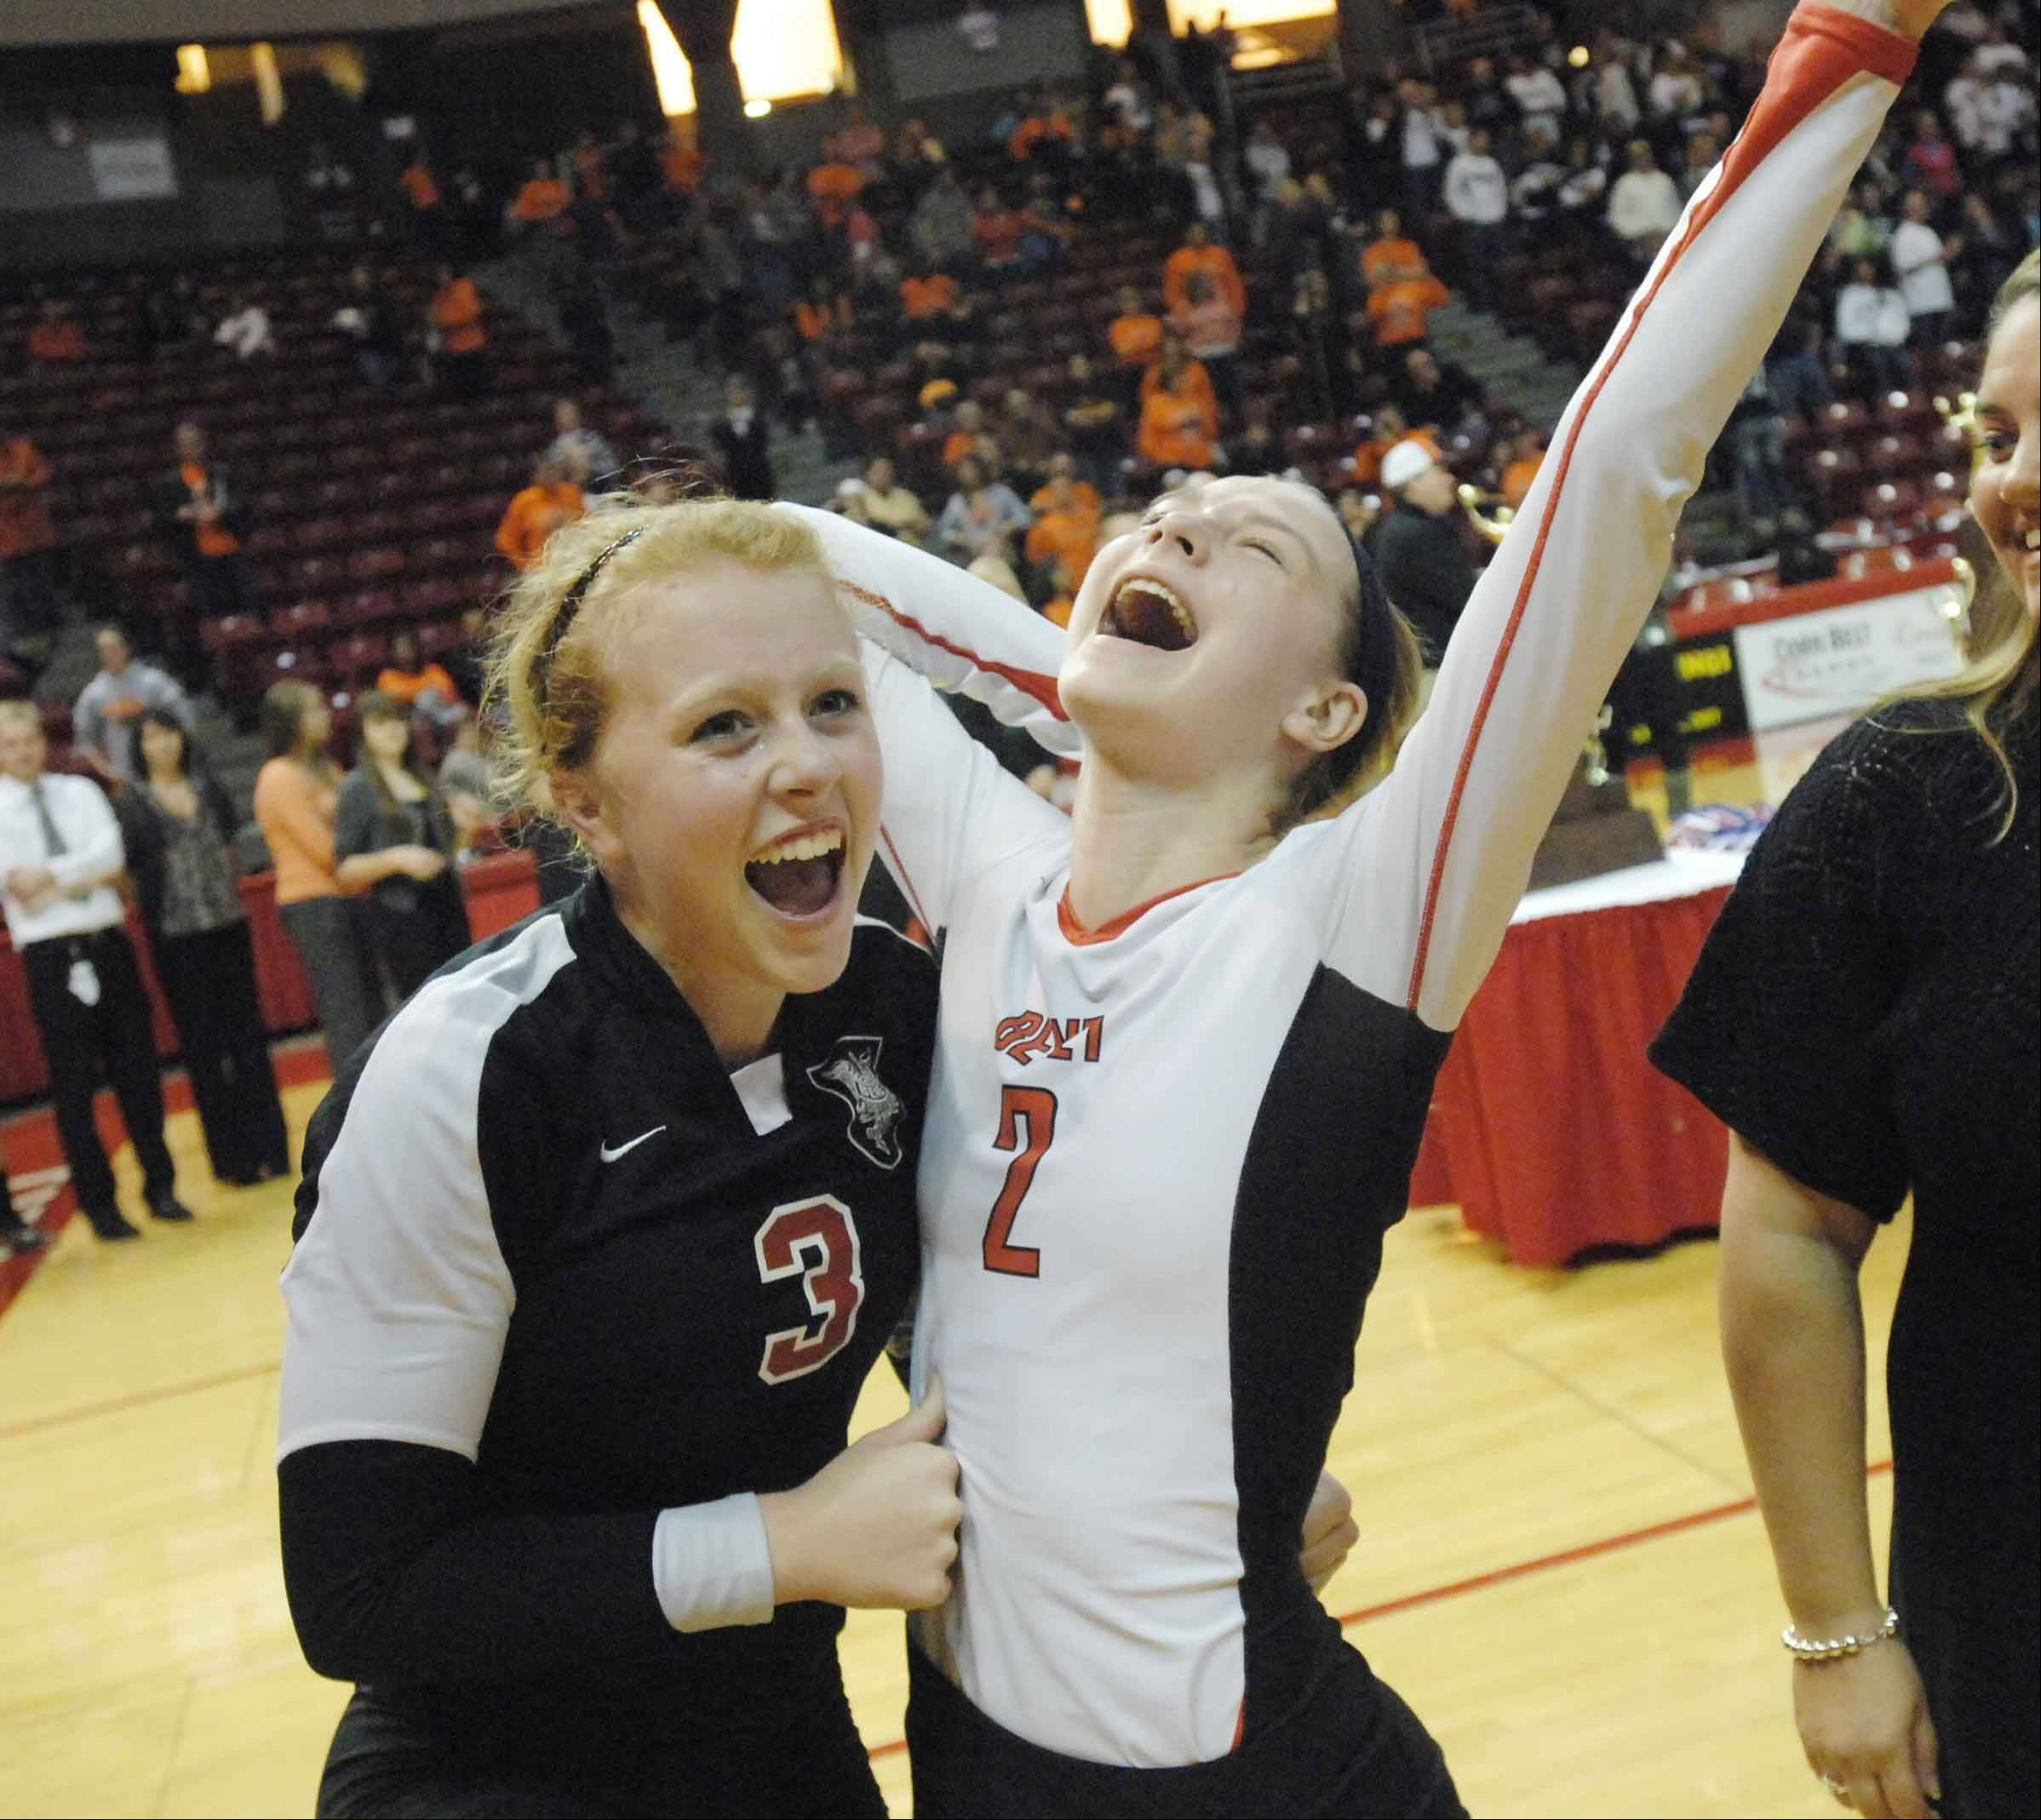 Benet vs. Cary-Grove action during the Class 4A state volleyball championship in Normal Saturday.